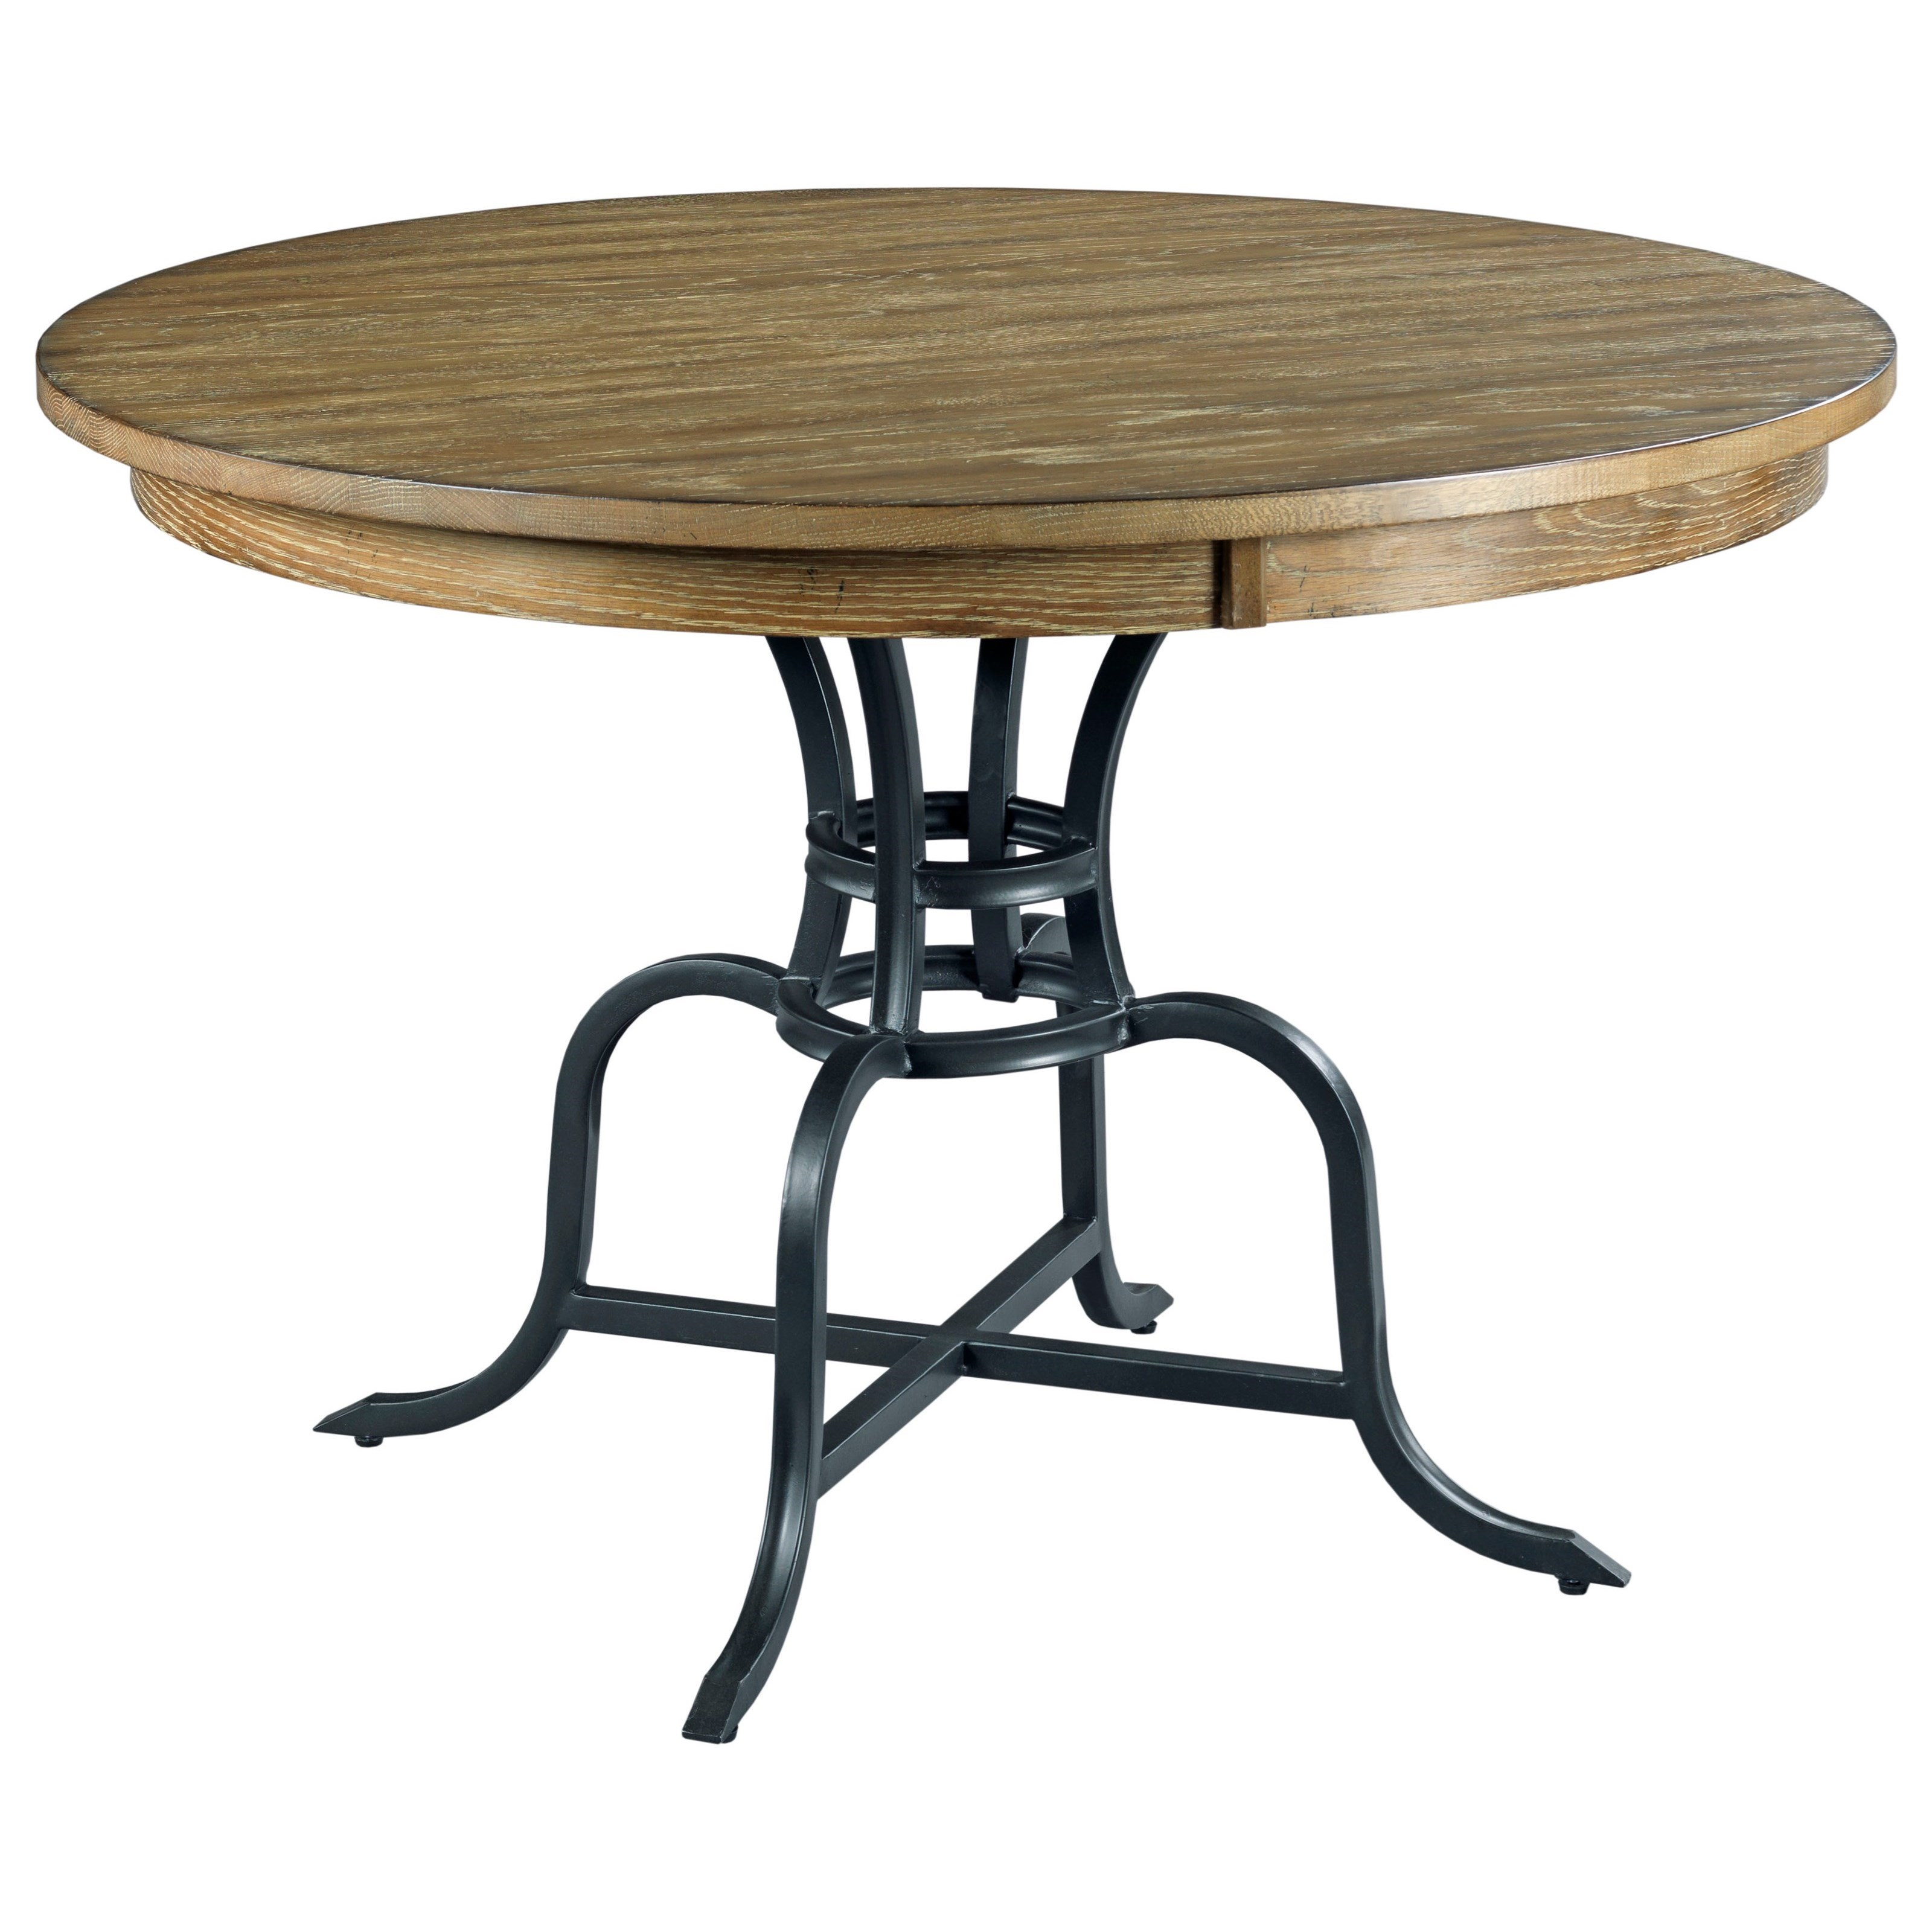 live windsor toronto chairs custom dining furniture tables metal wood image cupboard